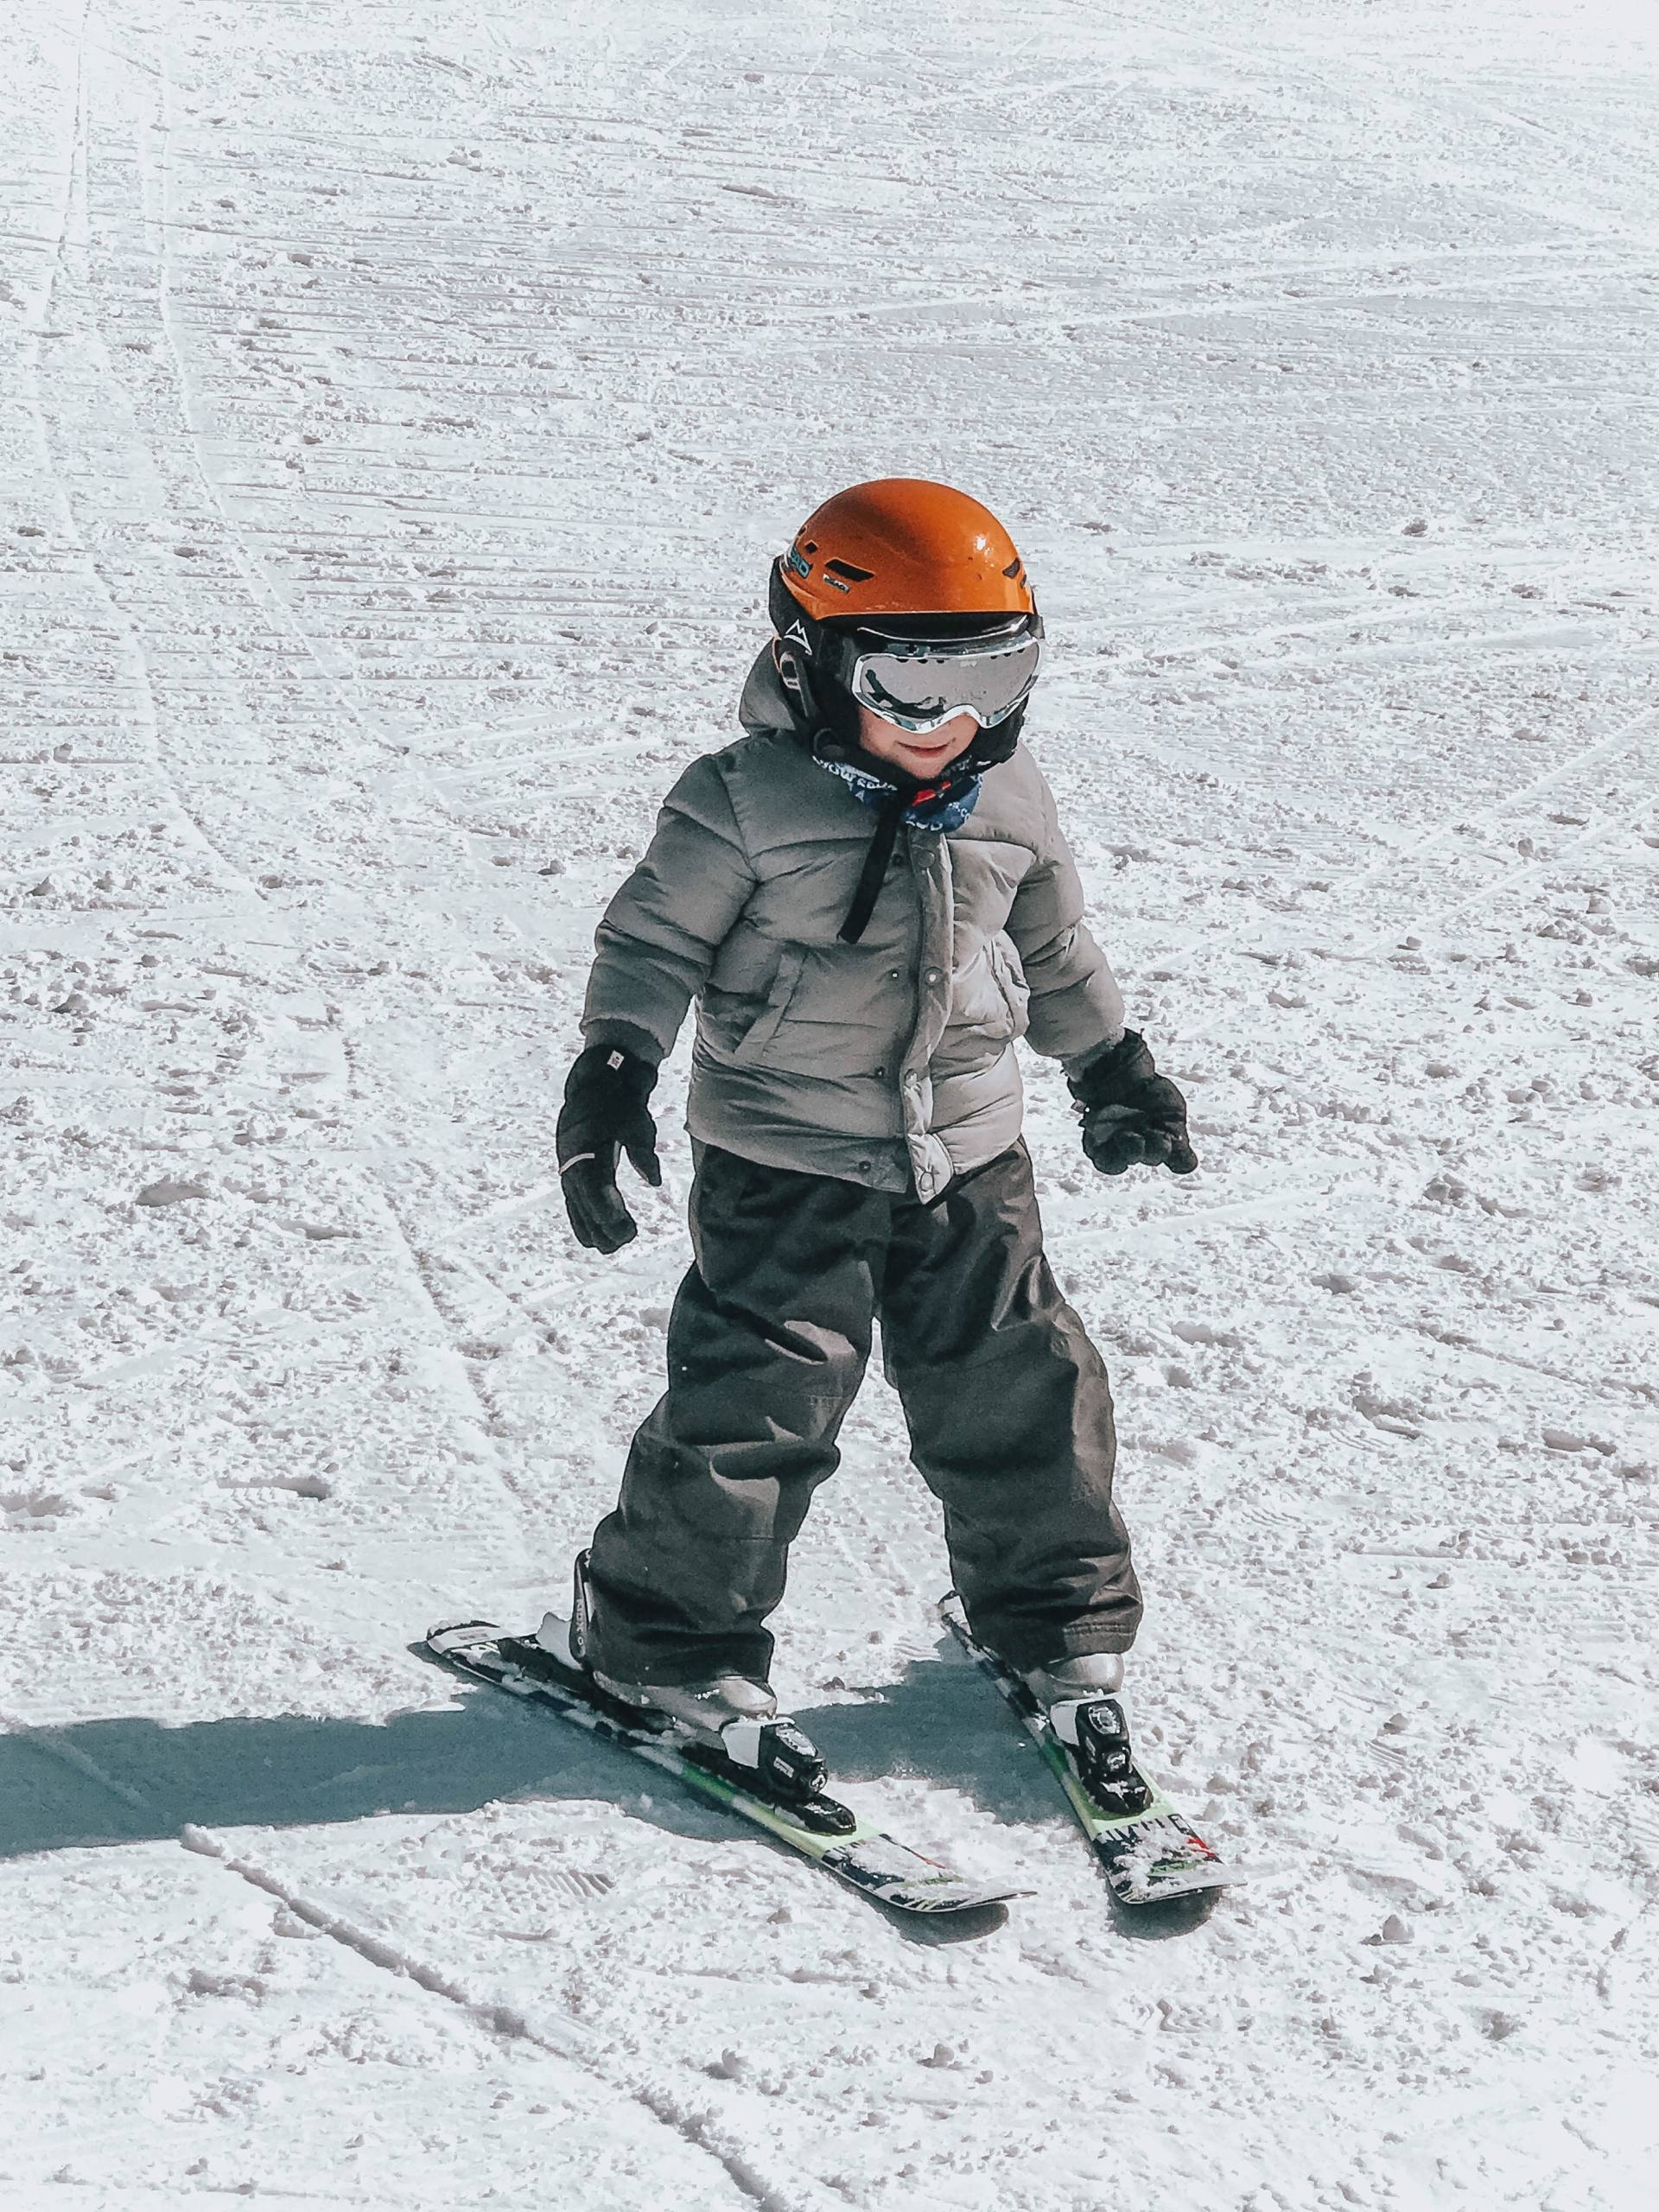 Our First Family Ski Trip – Smugglers' Notch